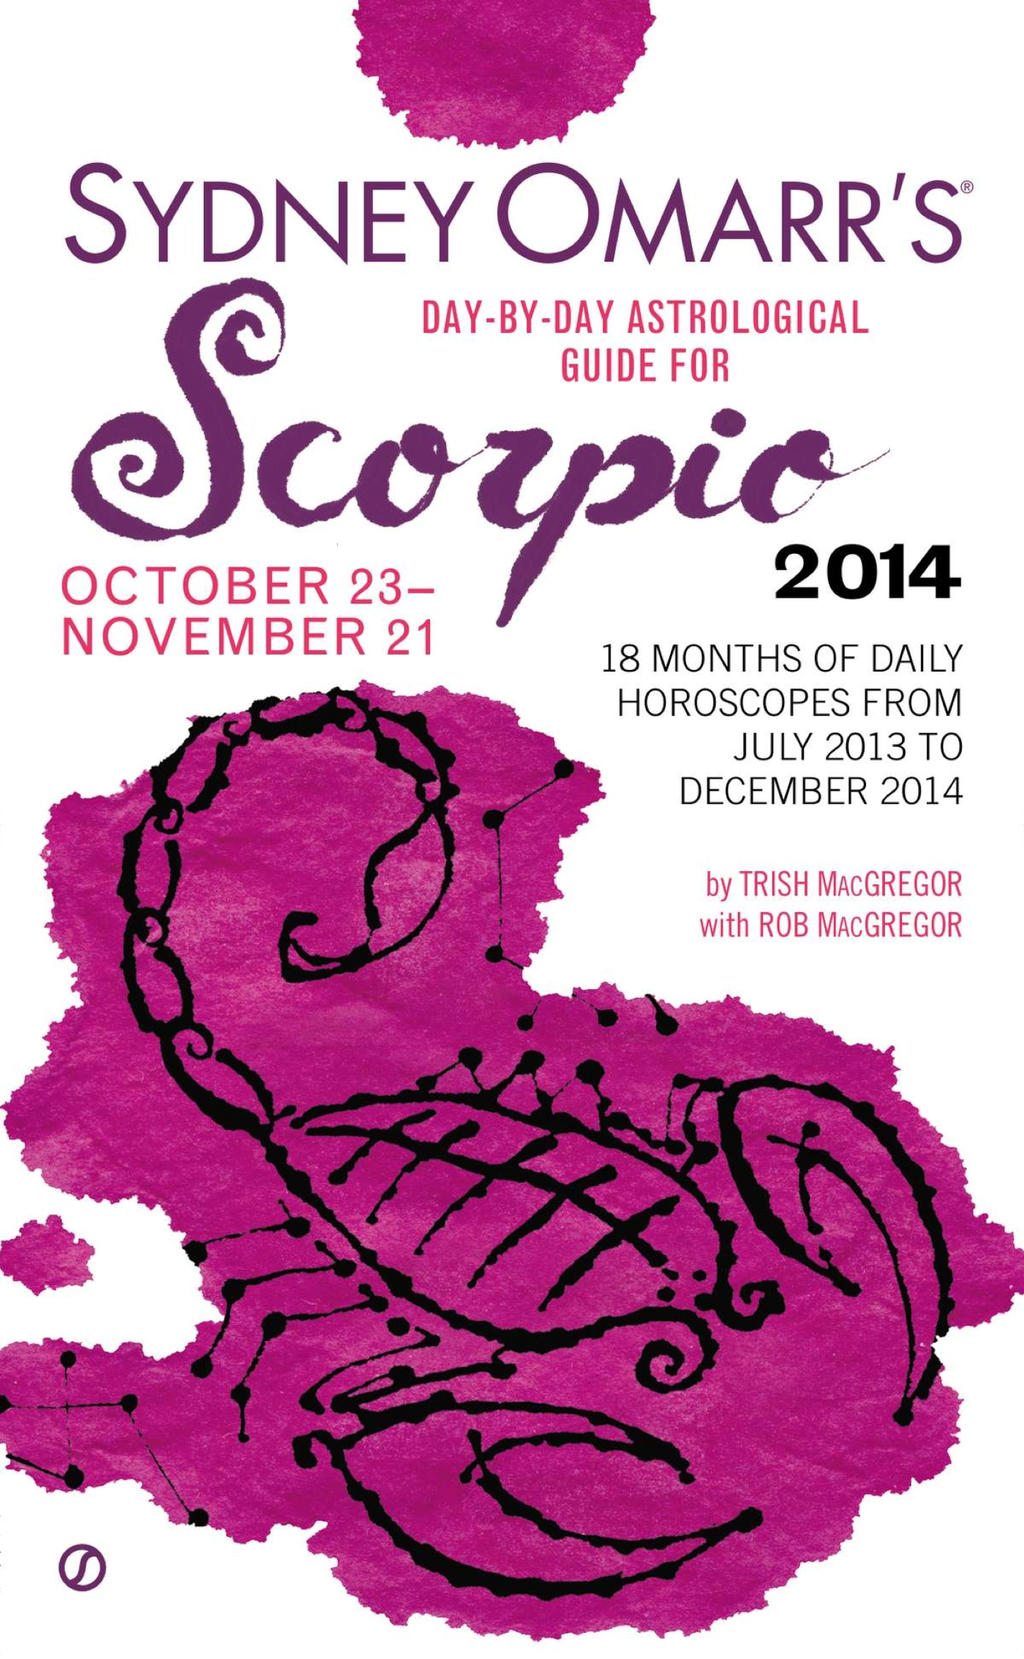 Sydney Omarr's Day-By-Day Astrological Guide for the Year 2014: Scorpio